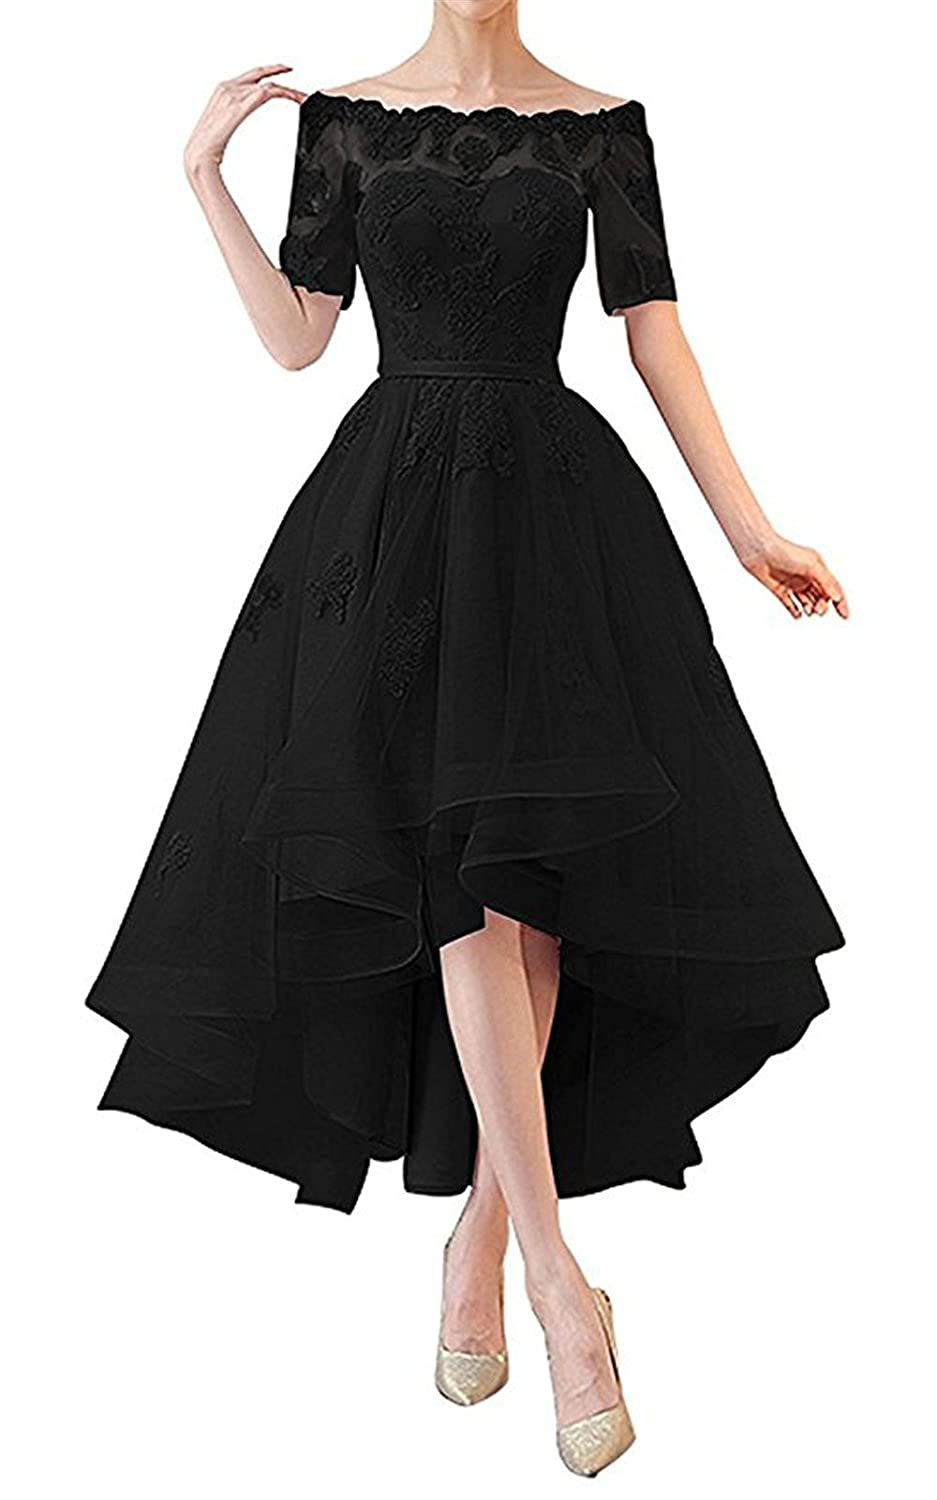 5fa4adfce29 NOVIA Women s Off Shoulder High Low Lace Prom Dress Half Sleeves Evening  Gown 10 at Amazon Women s Clothing store